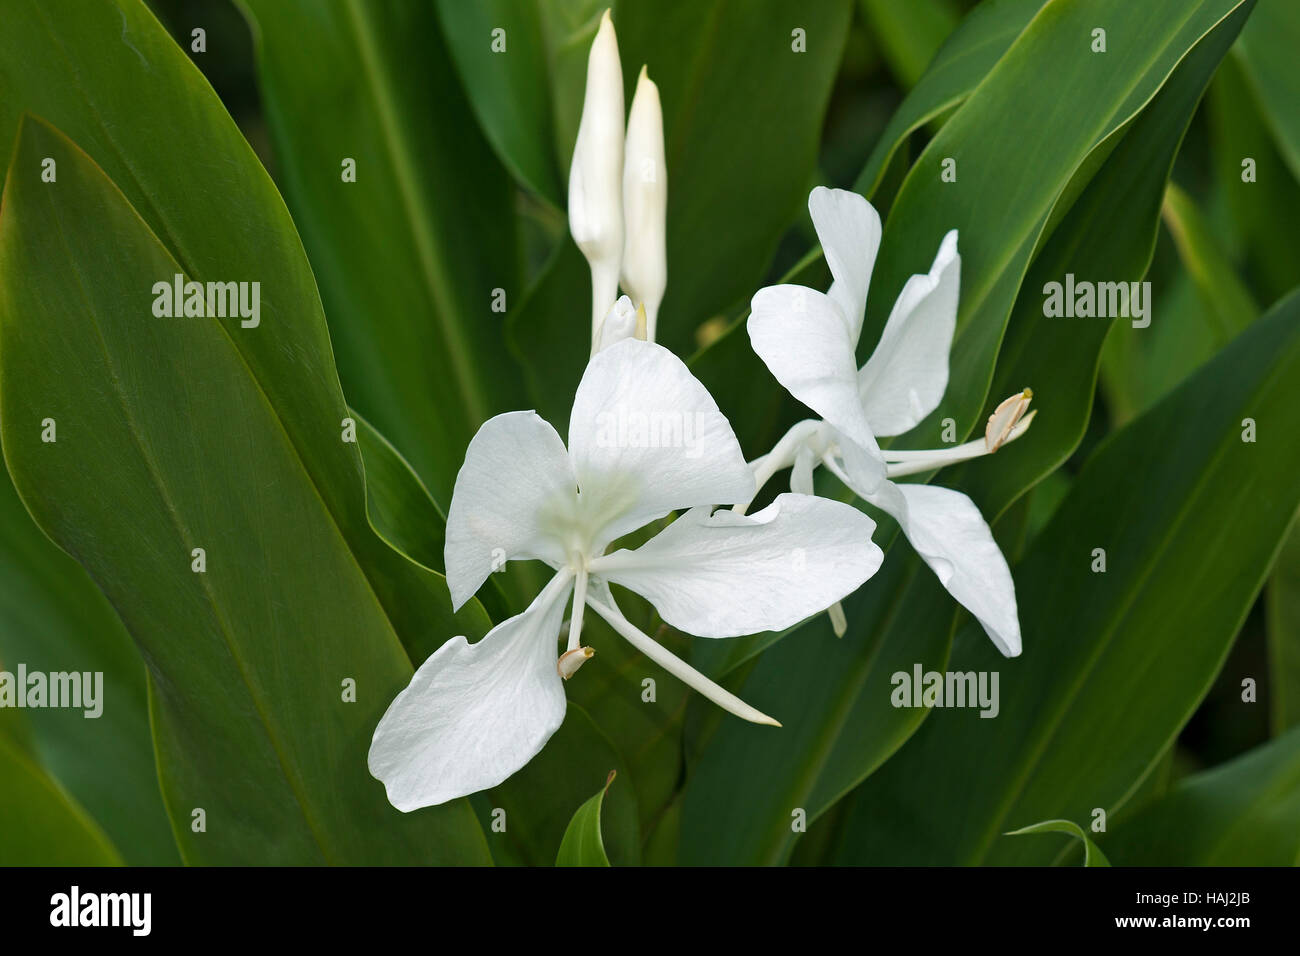 White Ginger Lily Flowers Stock Photo 127016355 Alamy